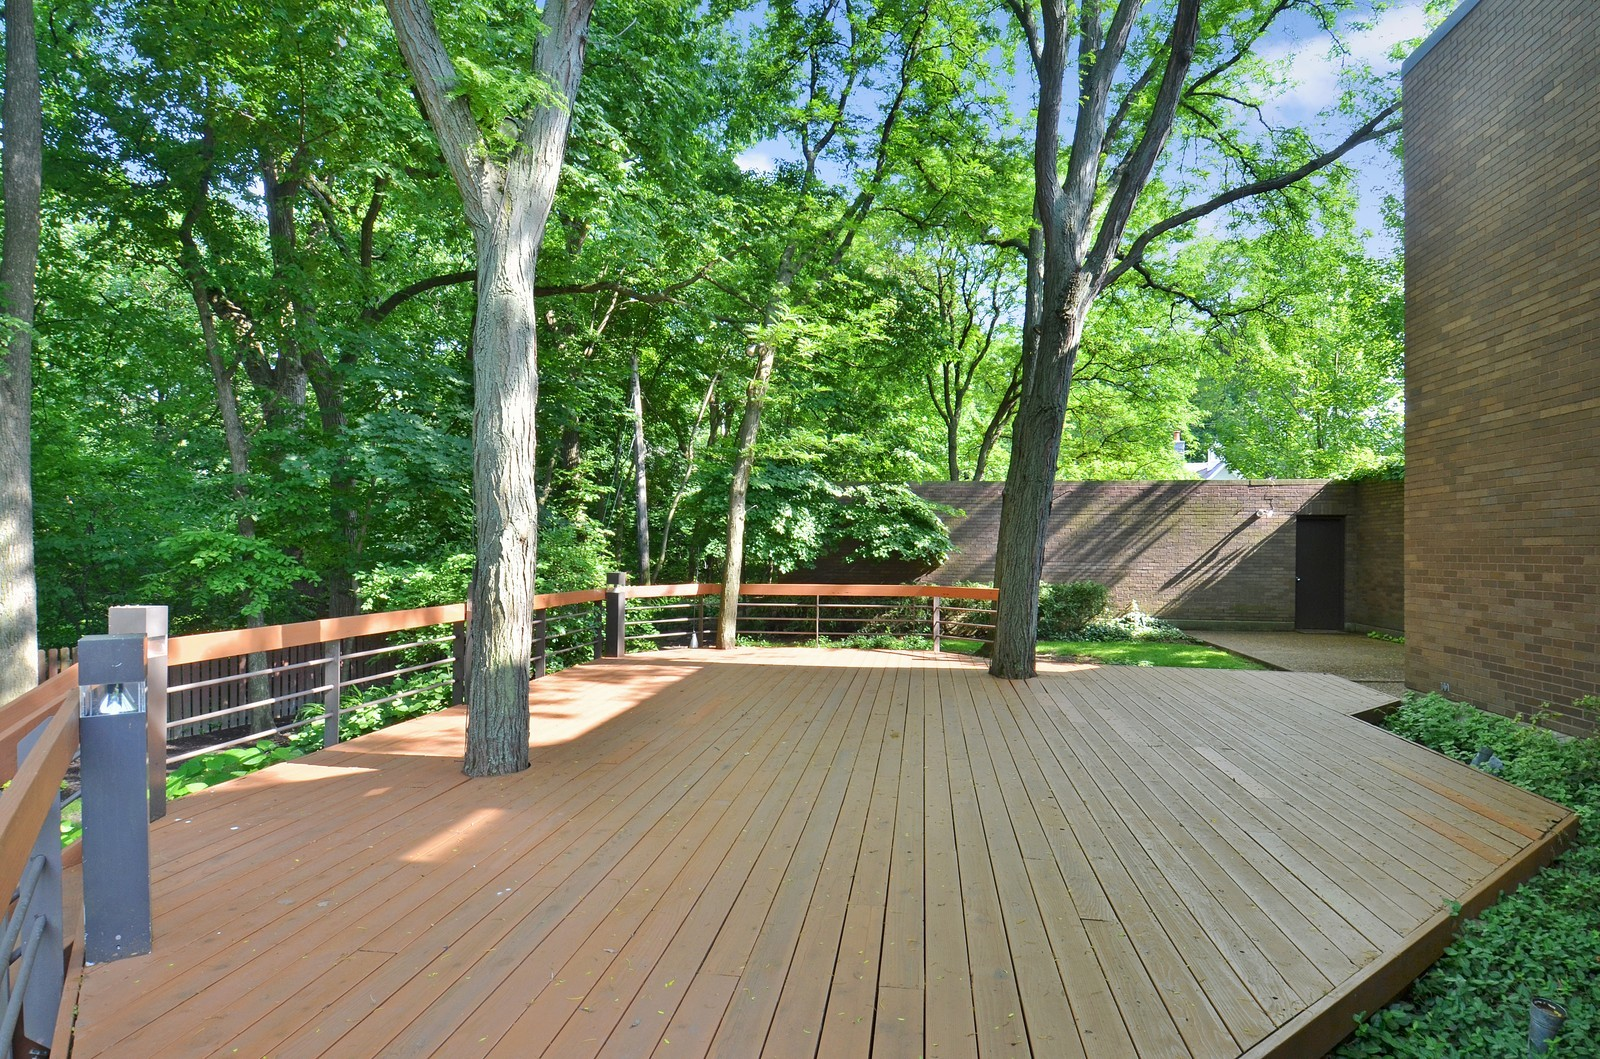 Real Estate Photography - 425 Woodside Ave, Hinsdale, IL, 60521 - Deck